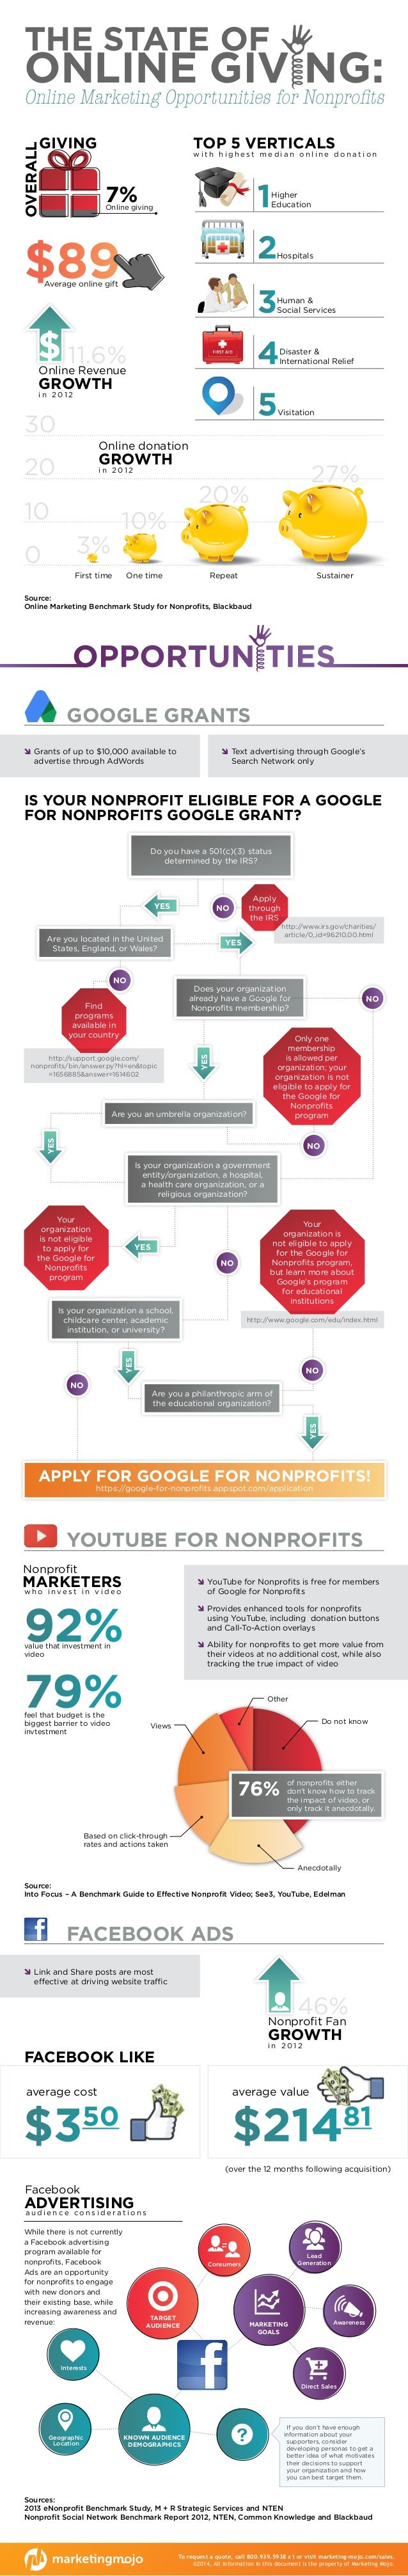 3% First time îî Text advertising through Google's Search Network only Source: Online Marketing Benchmark Study for Nonpro...